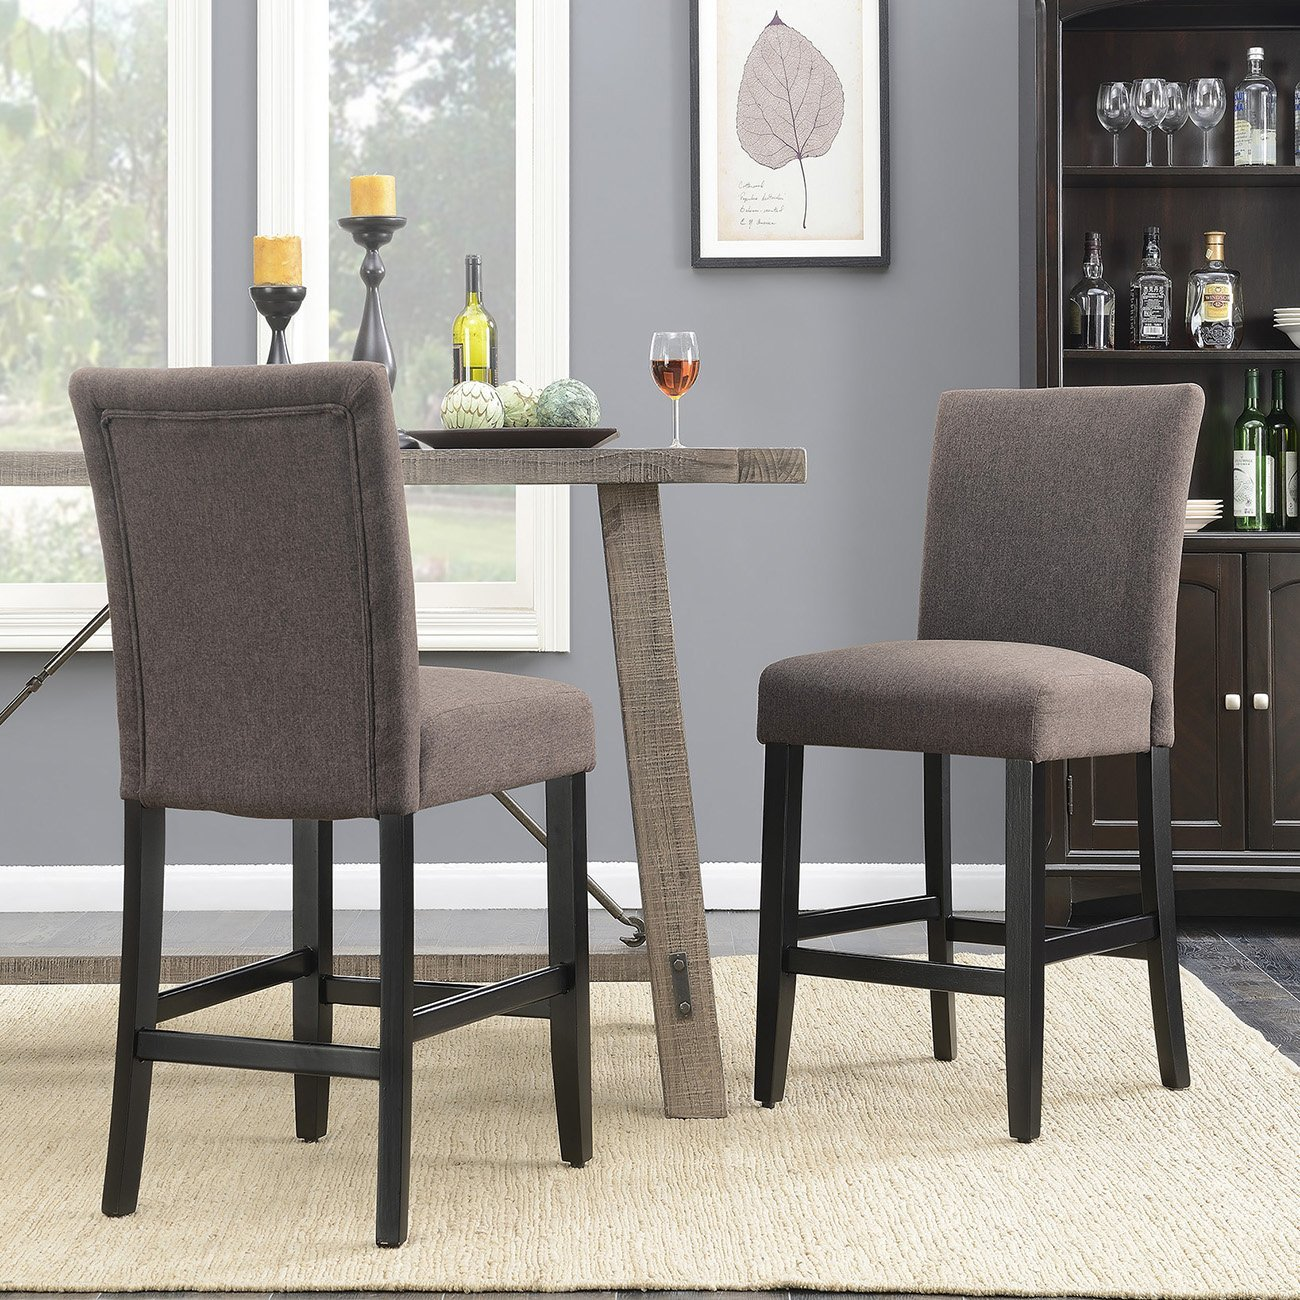 "Belleze 24"" Parson Chairs Dining Chair Kitchen Urban Style Counter Height with Wooden Legs Set of (2) - Dark Gray"